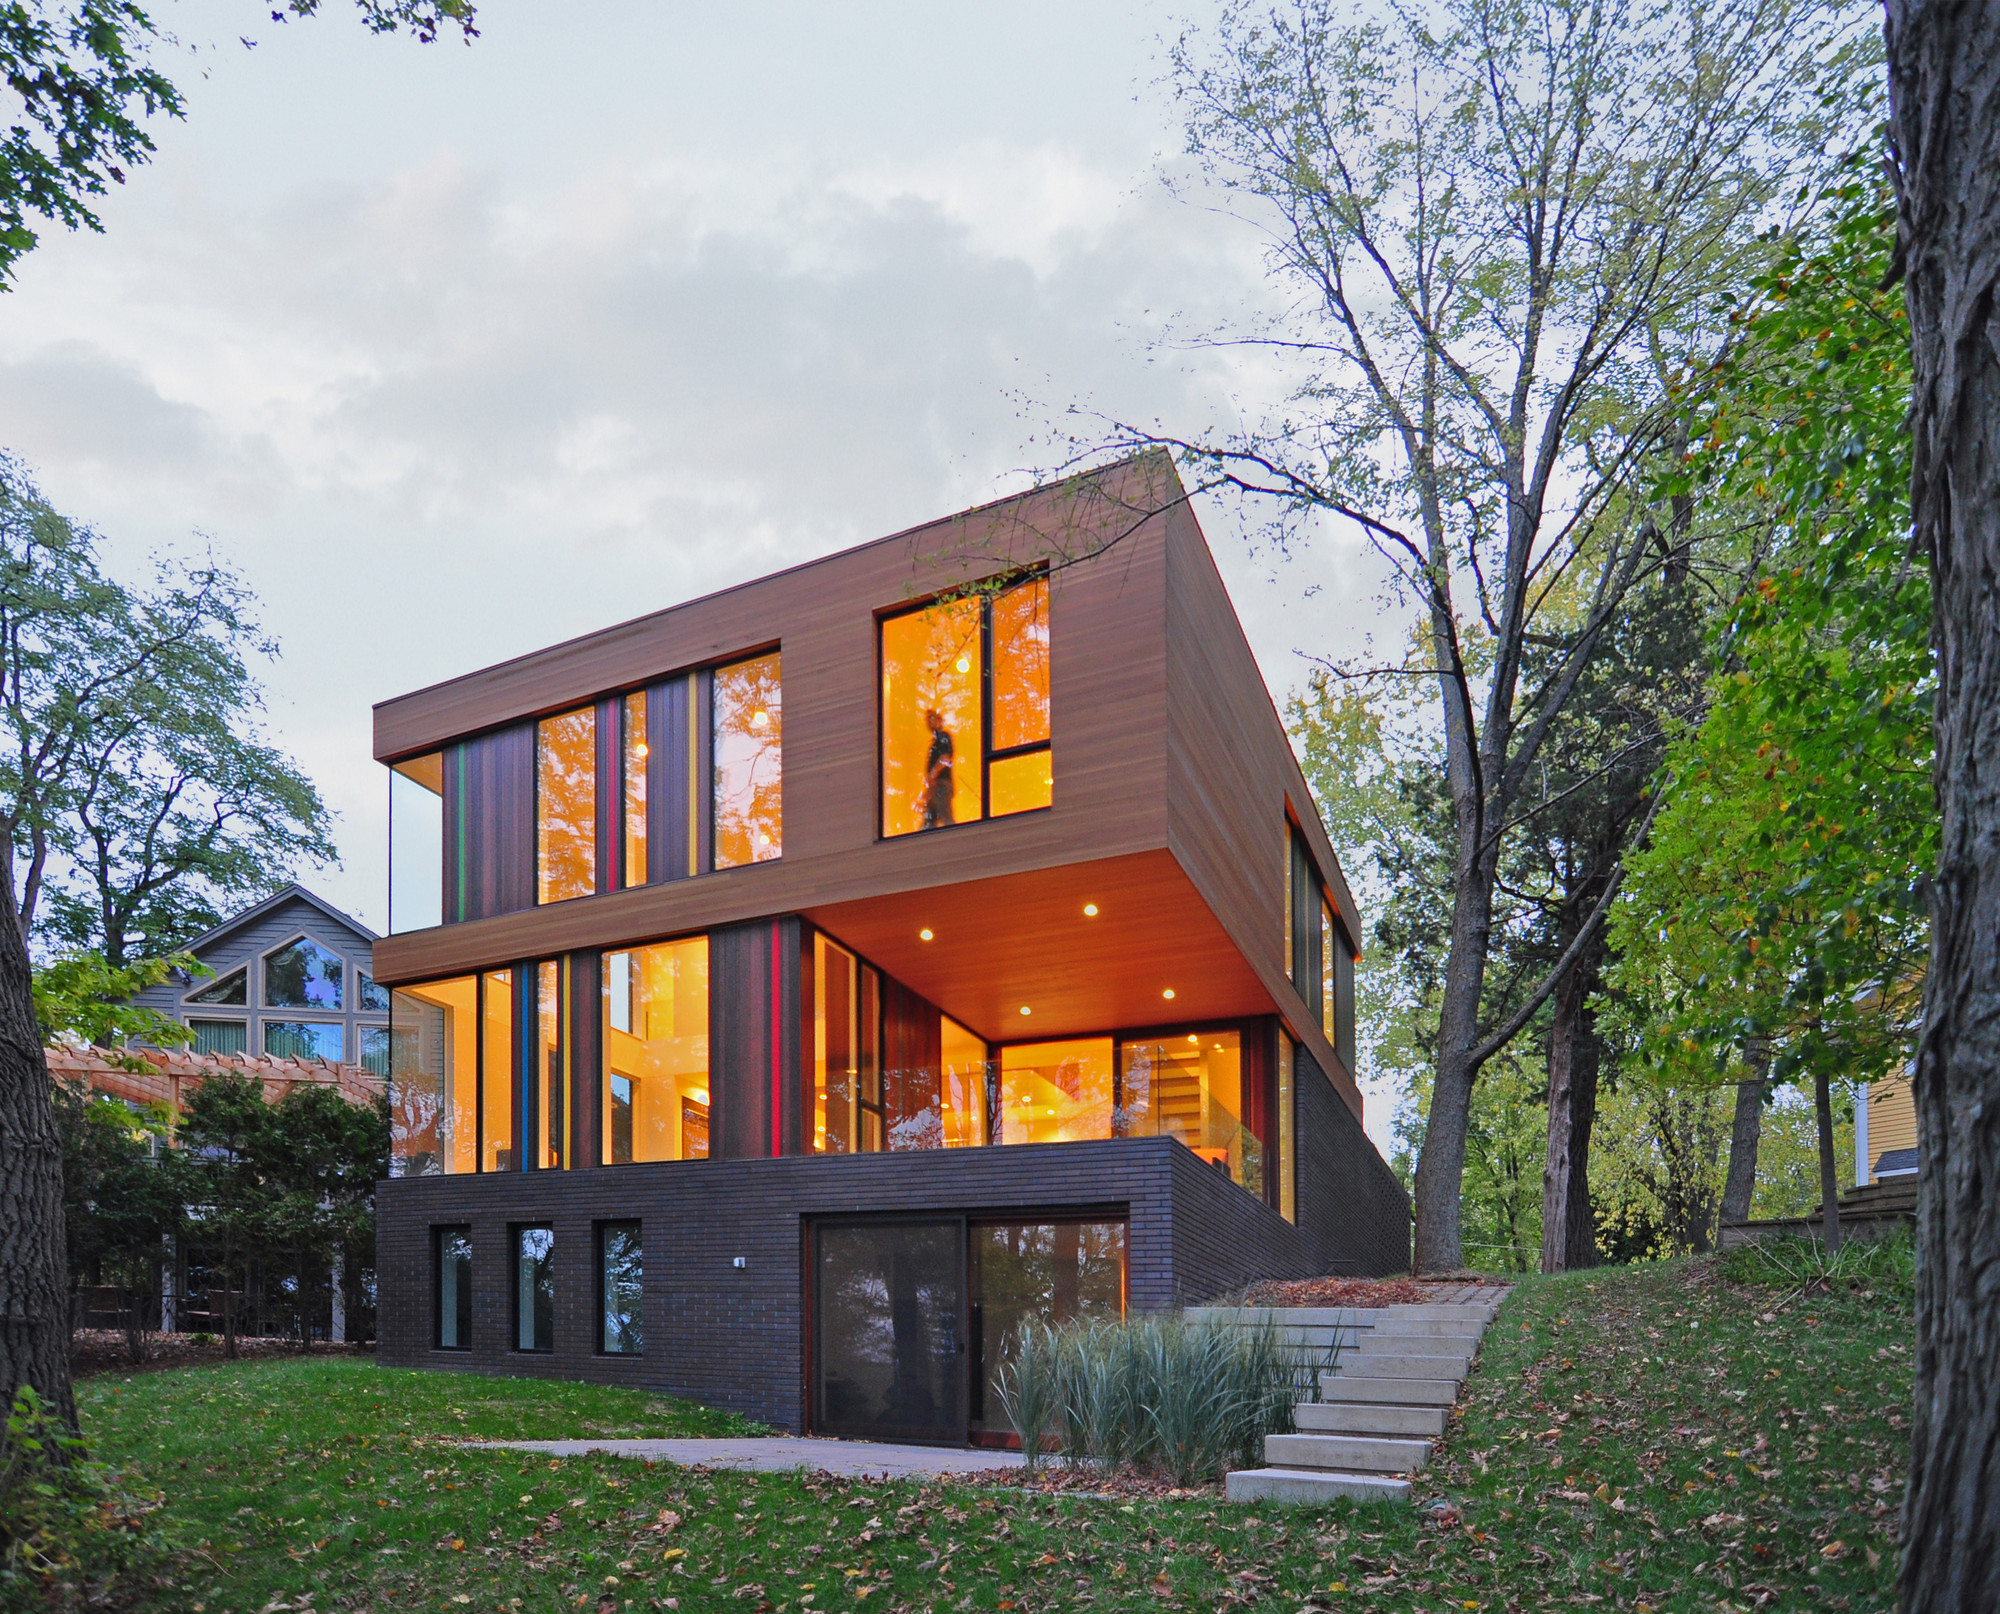 Gallery of redaction house johnsen schmaling architects 4 - Design homes wi ...